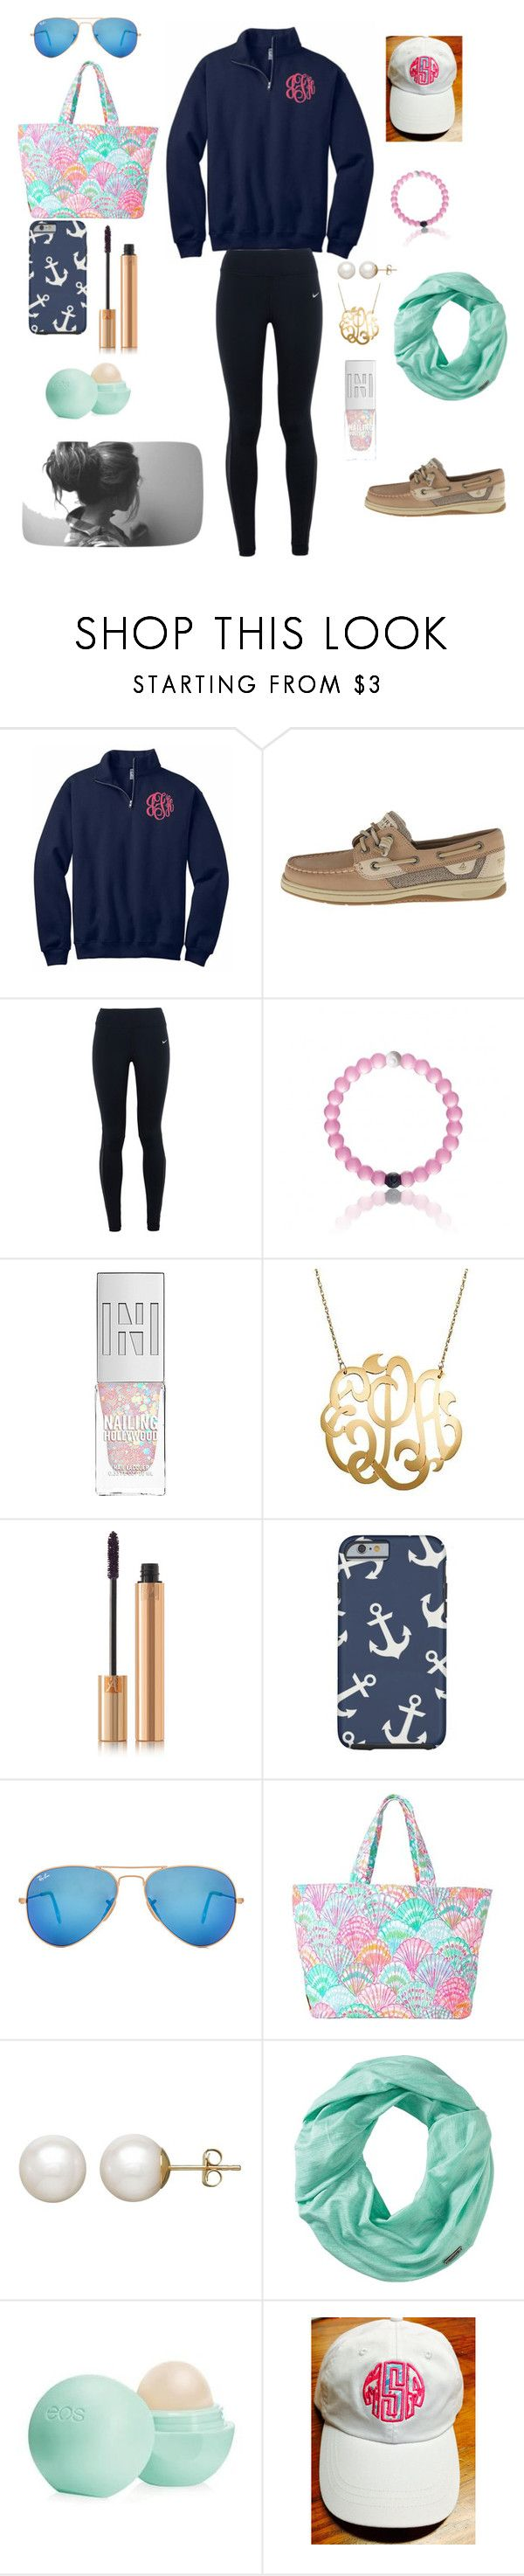 """P is for PREPPY"" by logoloops23 ❤ liked on Polyvore featuring Sperry, NIKE, Yves Saint Laurent, Ray-Ban, Lilly Pulitzer, Honora, Smartwool and Eos"